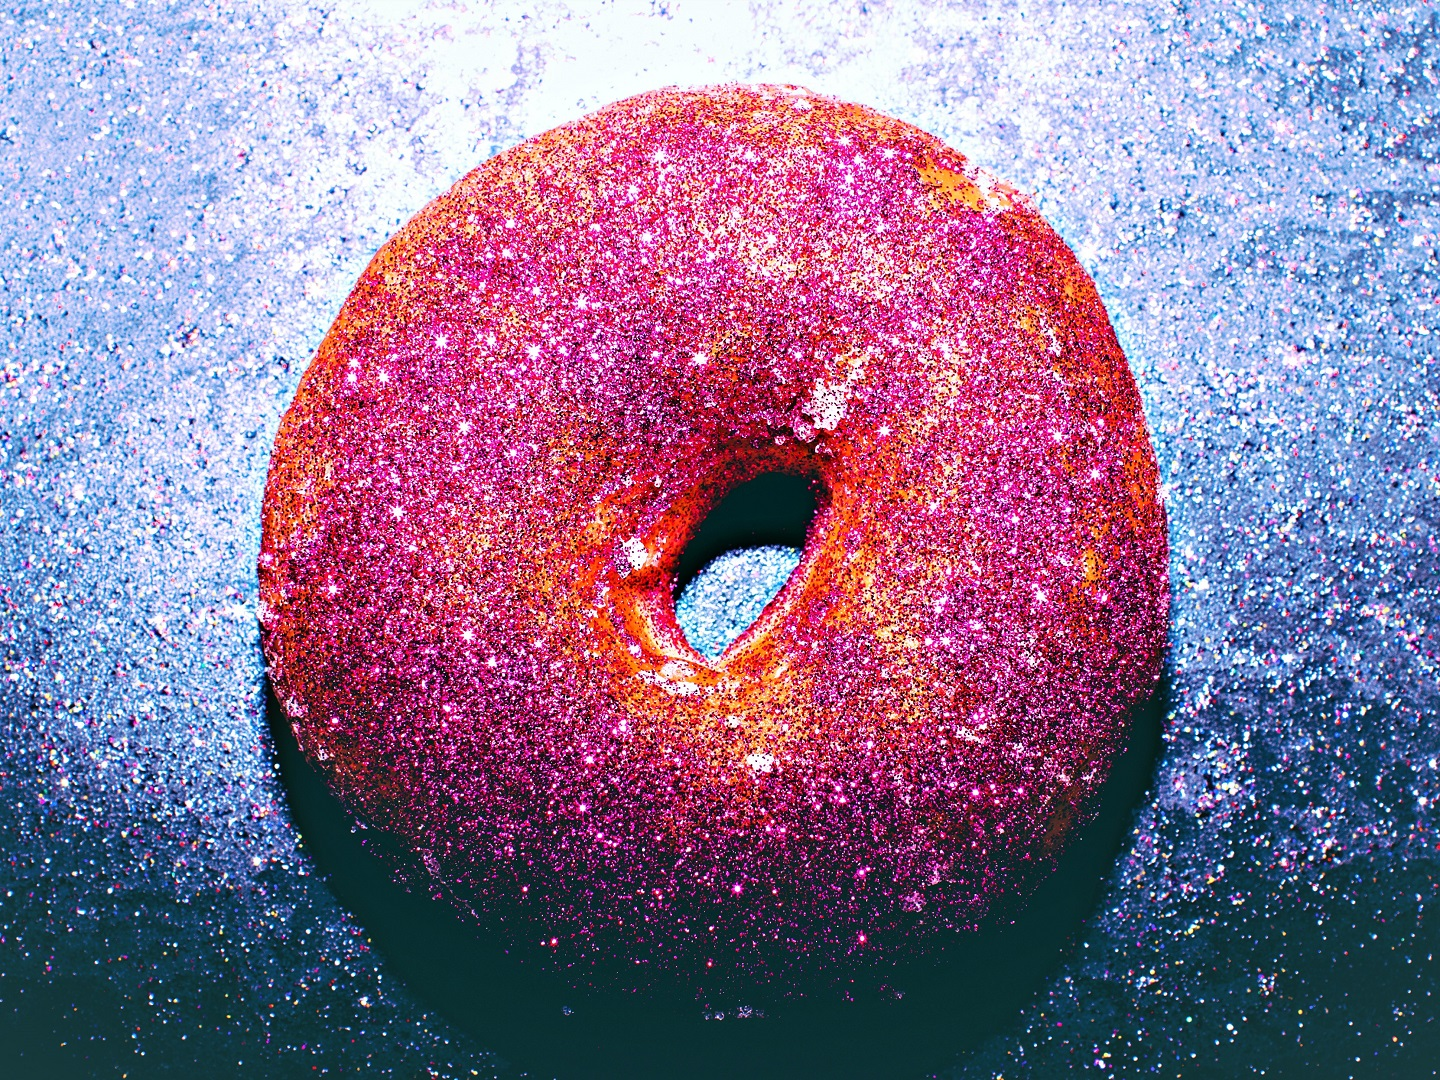 Don't Touch Holiday Desserts with Edible Glitter Until You Read the FDA's Warning